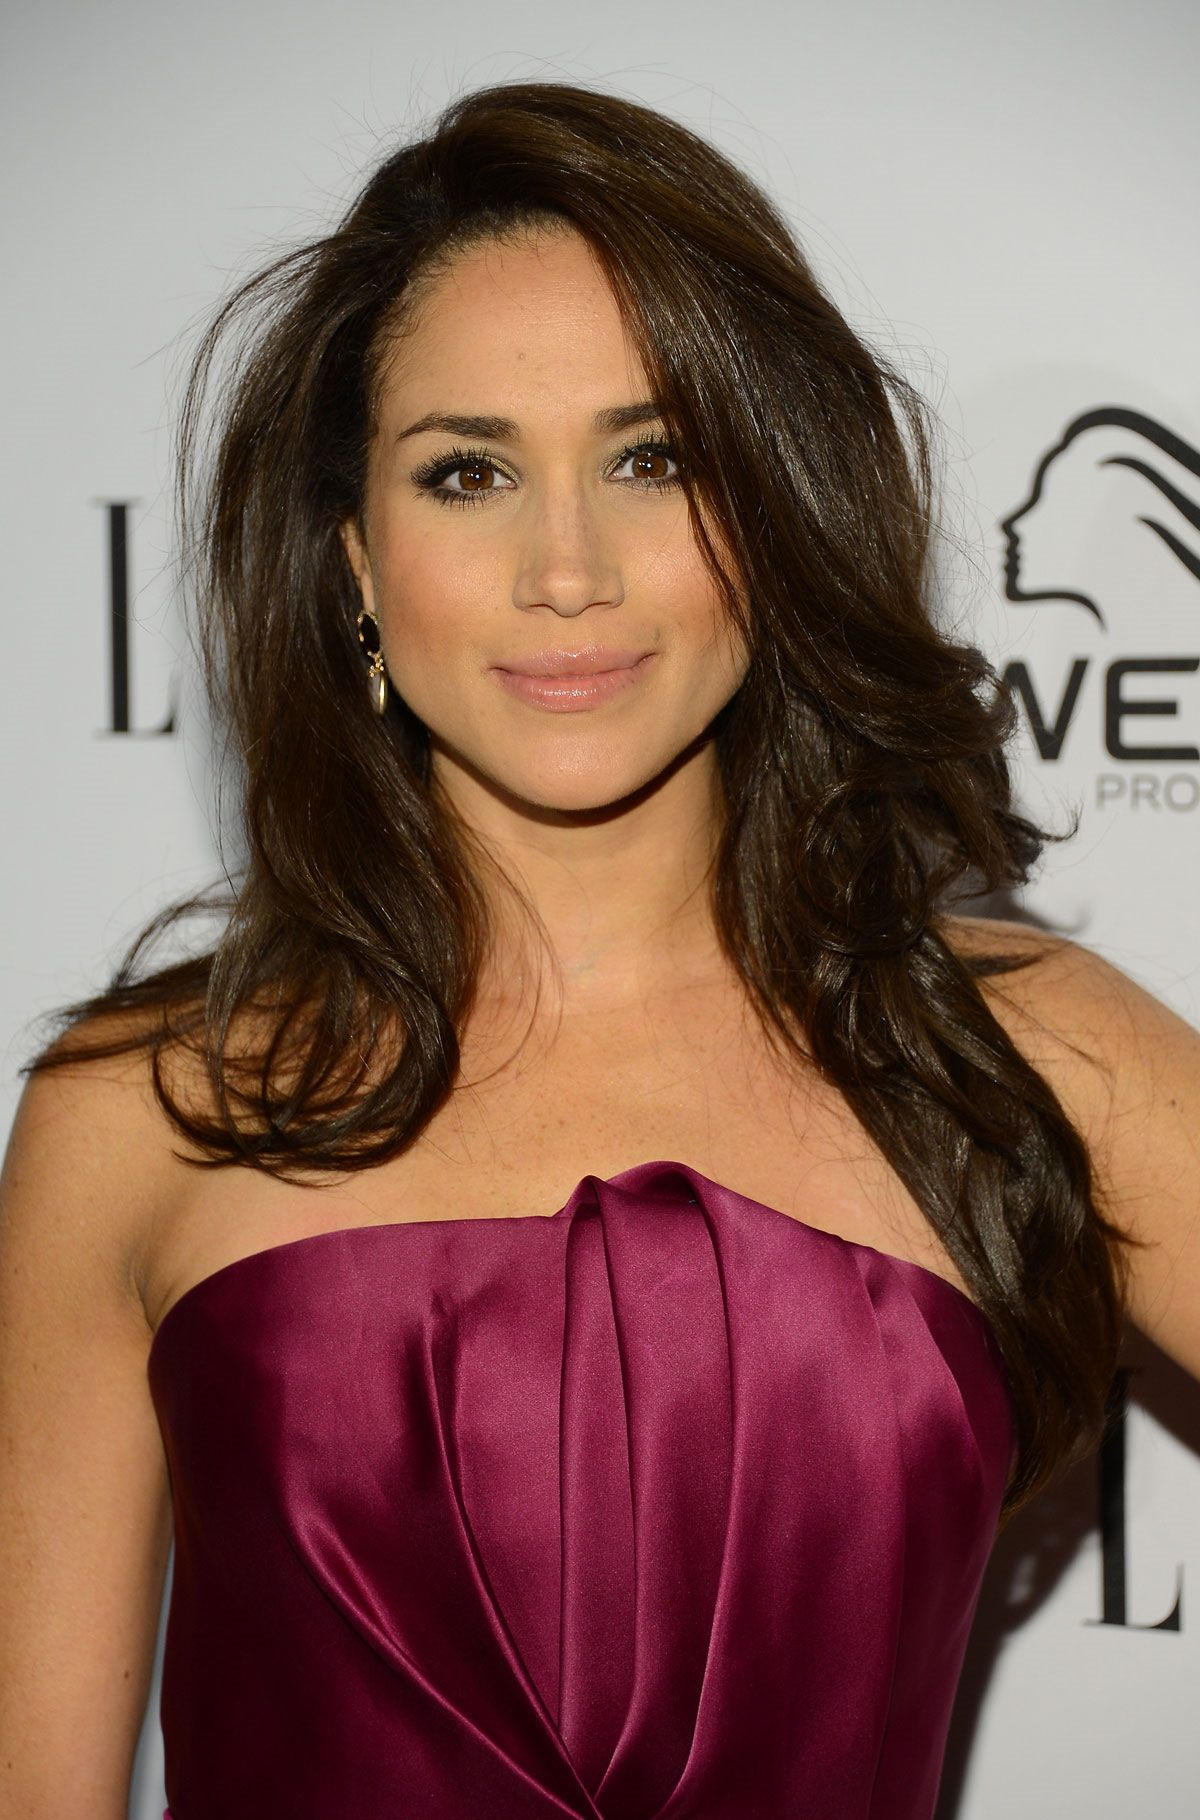 Meghan markle biography and gallery www suitstv net